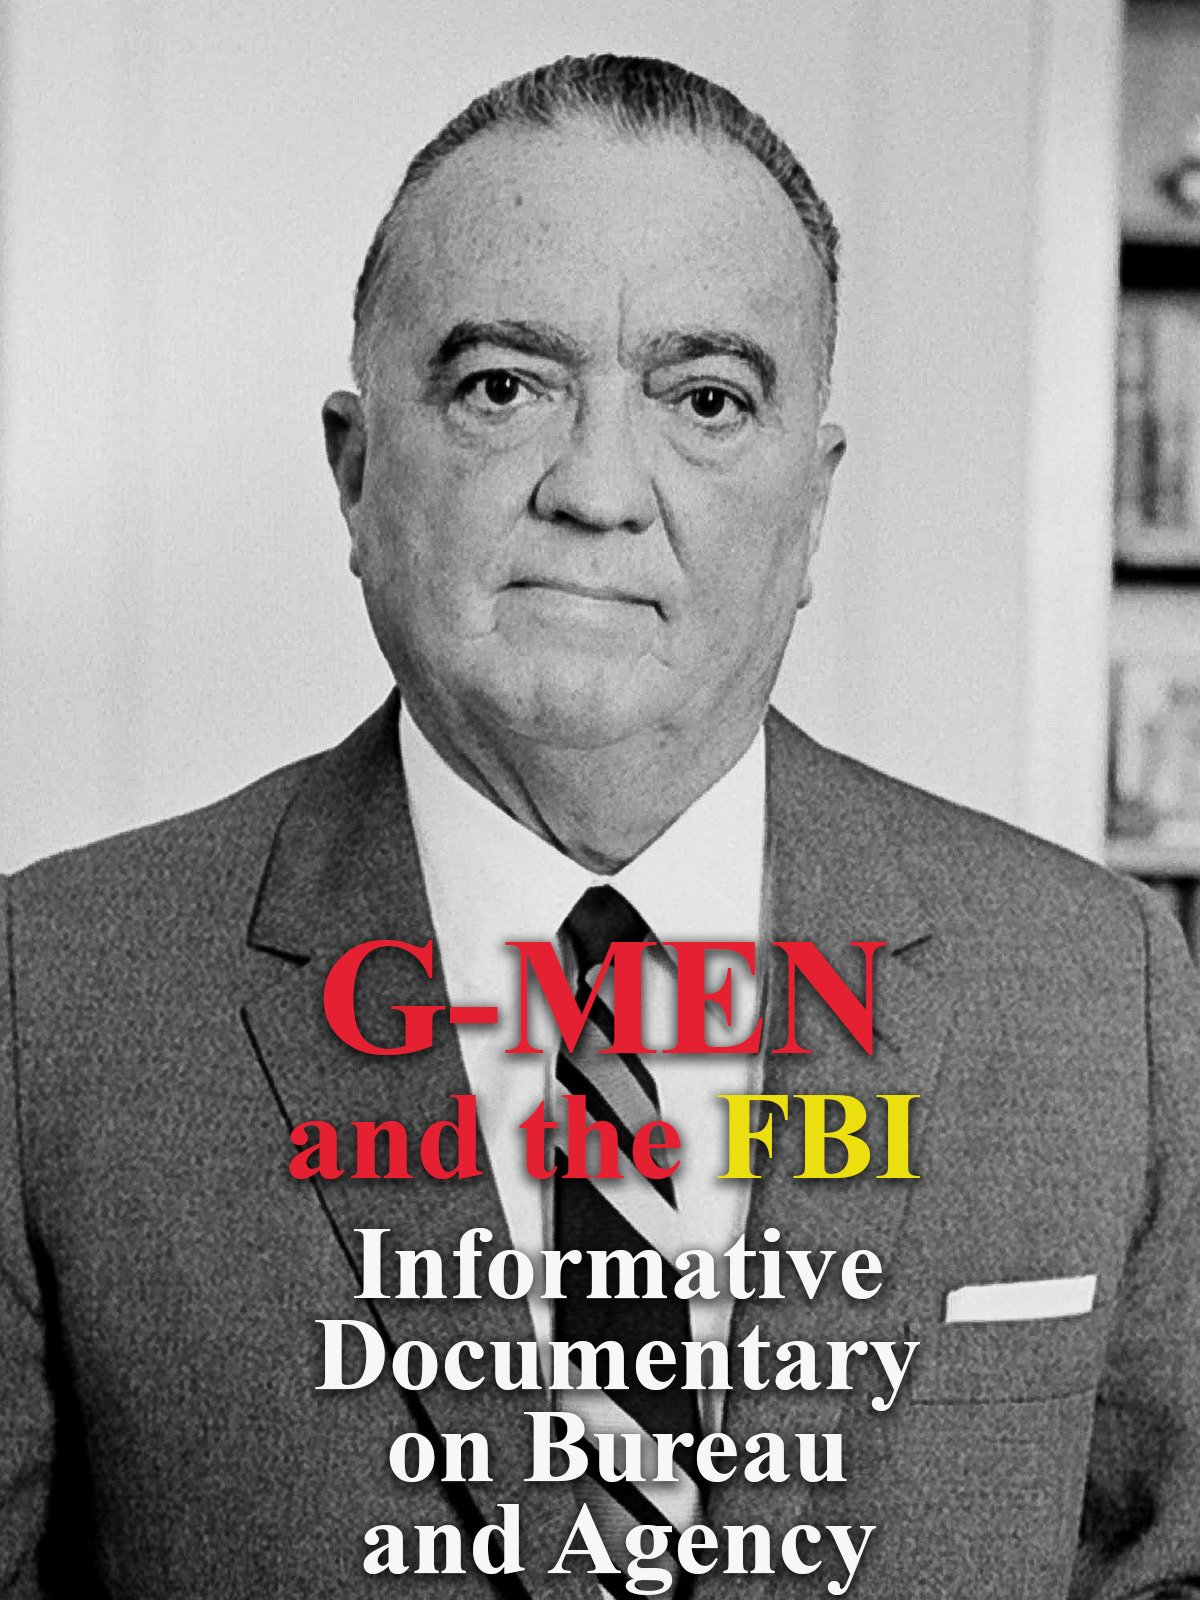 G-Men and the FBI Informative Documentary on Bureau and Agency